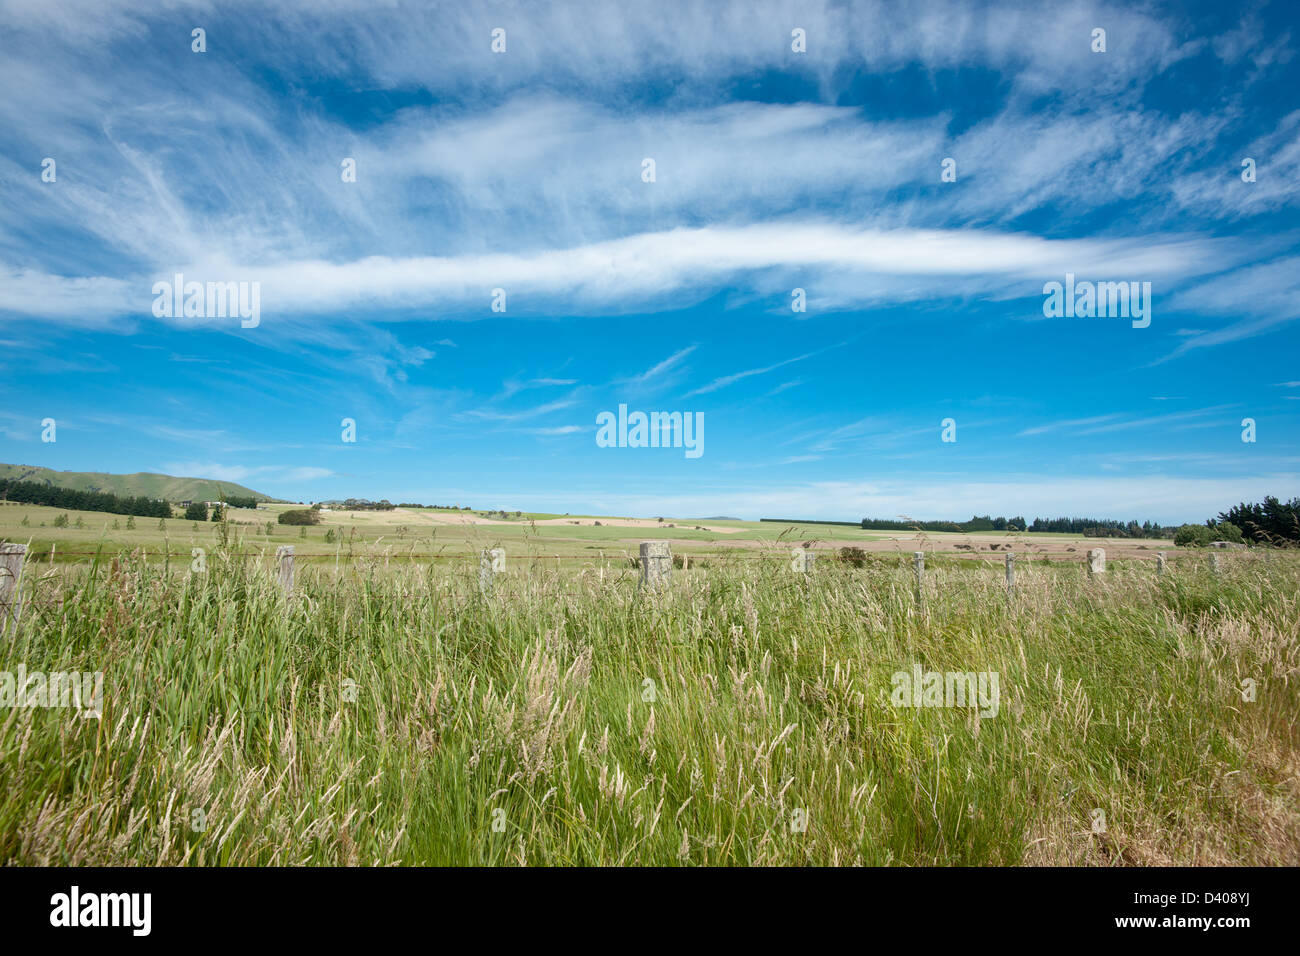 Cirrus high cloud being blown across a rural landscape. - Stock Image